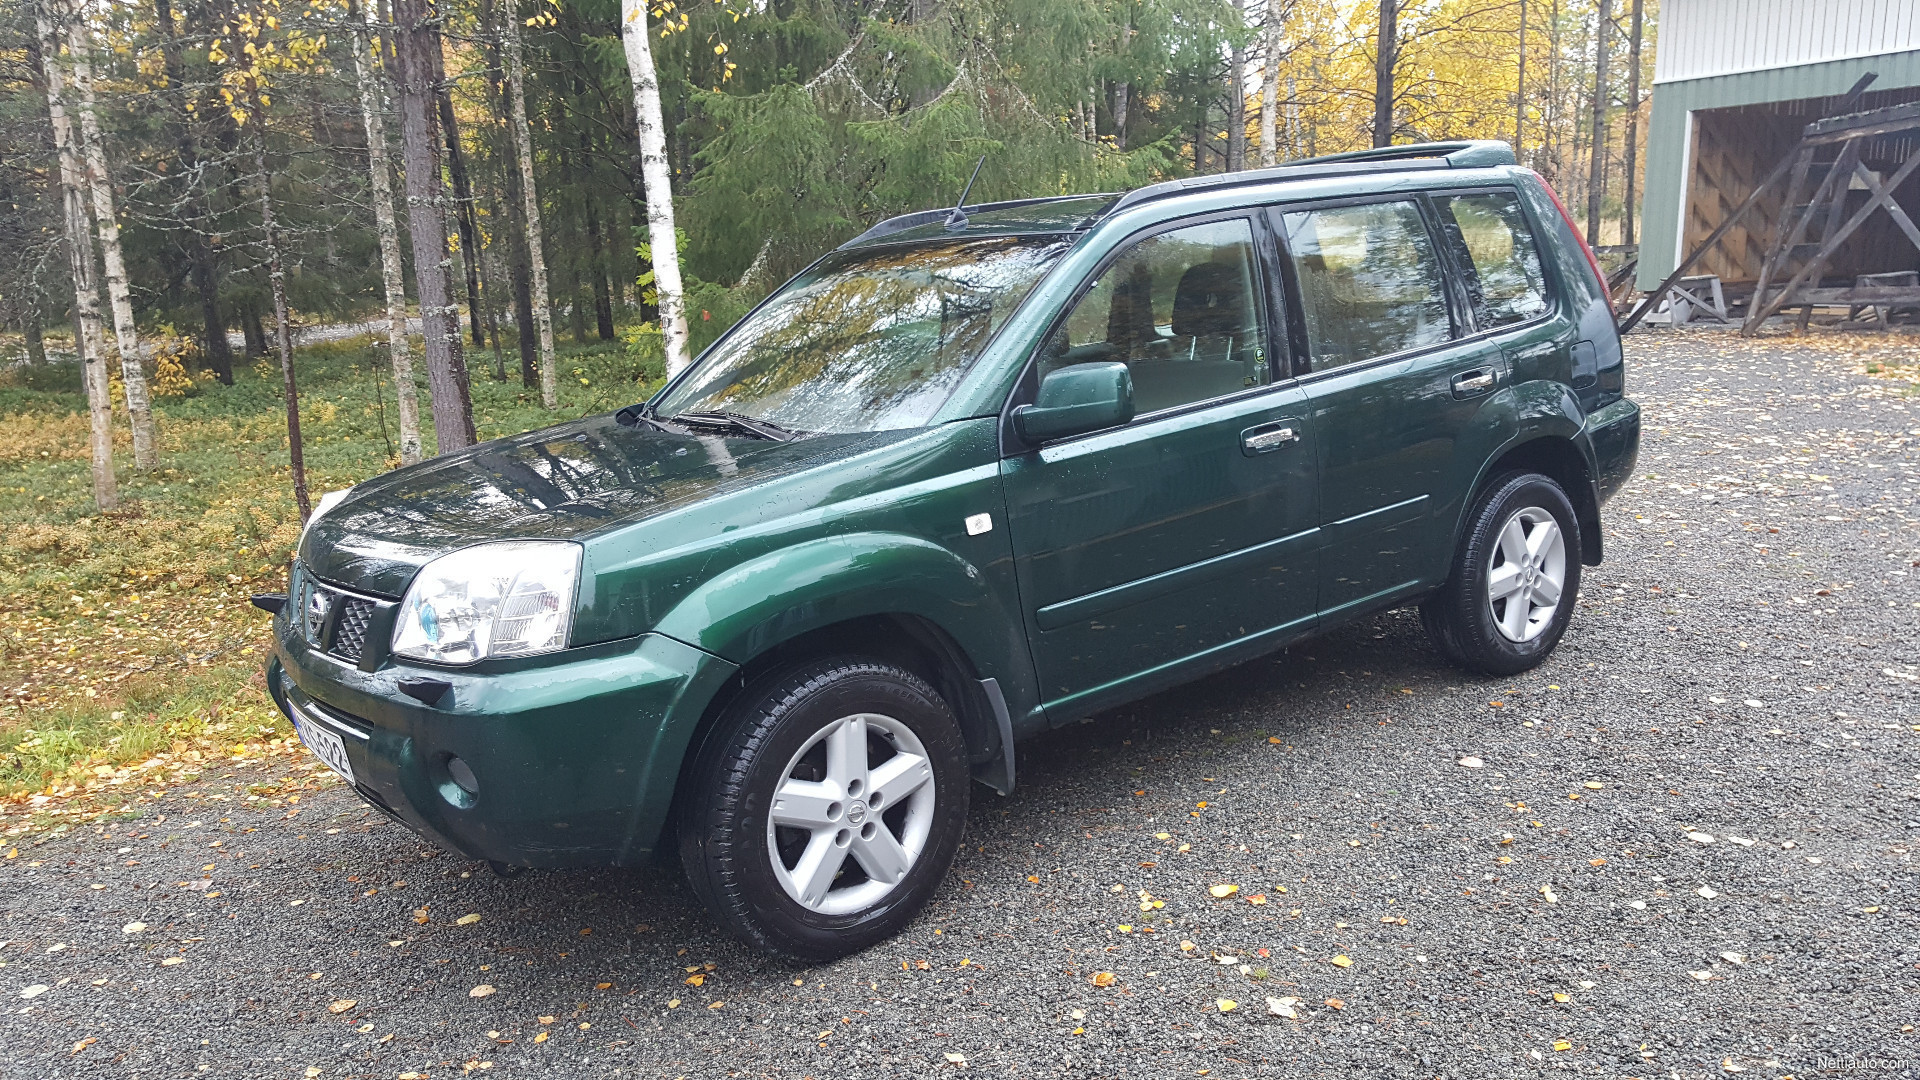 Nissan X Trail 22dci 136 Comfort 5d 4x4 Rek Pakettiautoksi Webasto Xtrail Offroad Modified Previous Next